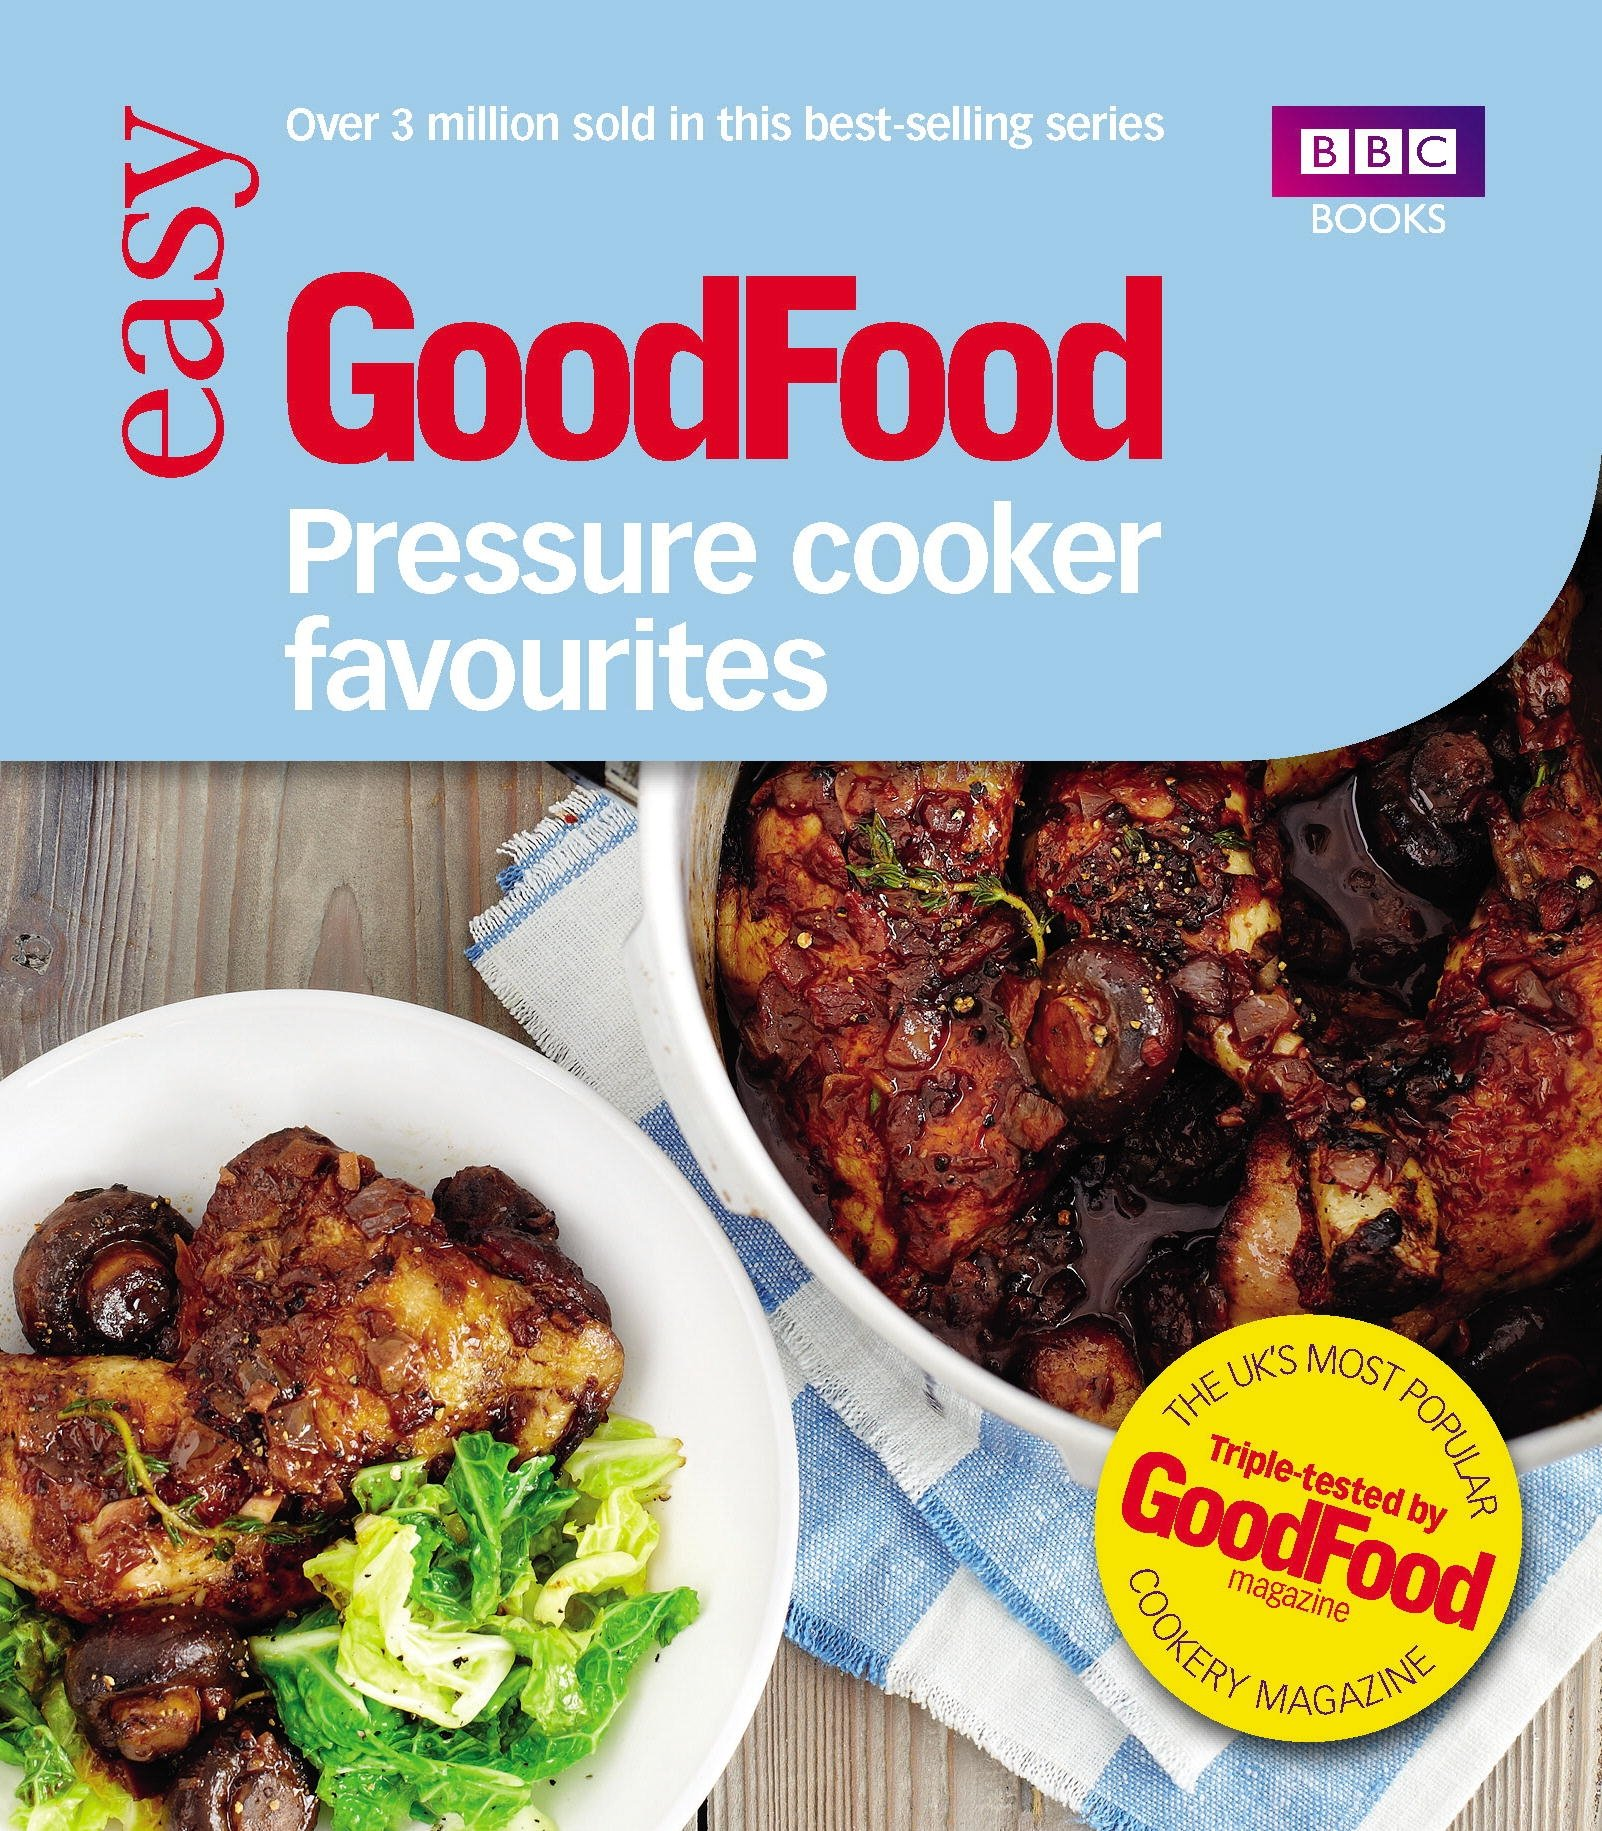 Good Food: Pressure Cooker Favourites 2